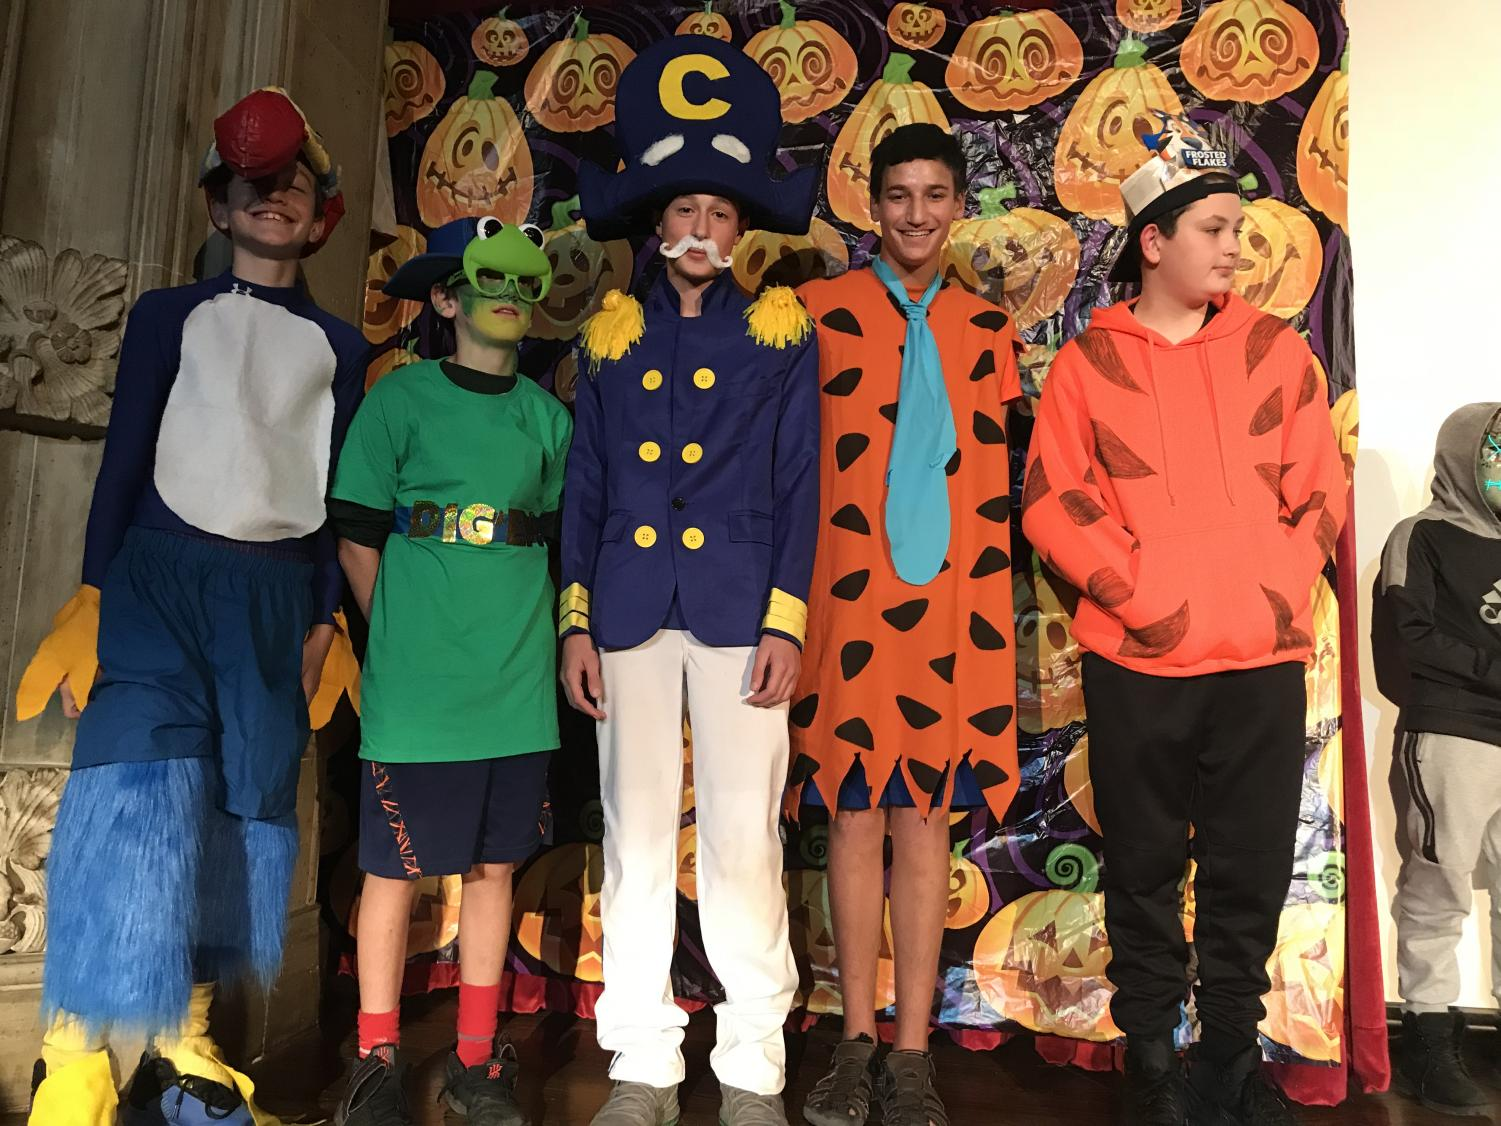 7th graders Chris Archer, Jack Straub, Luke Arone, Ari Hoffman, and Brendan Longworth pose for a pic during the Halloween Extravaganza.